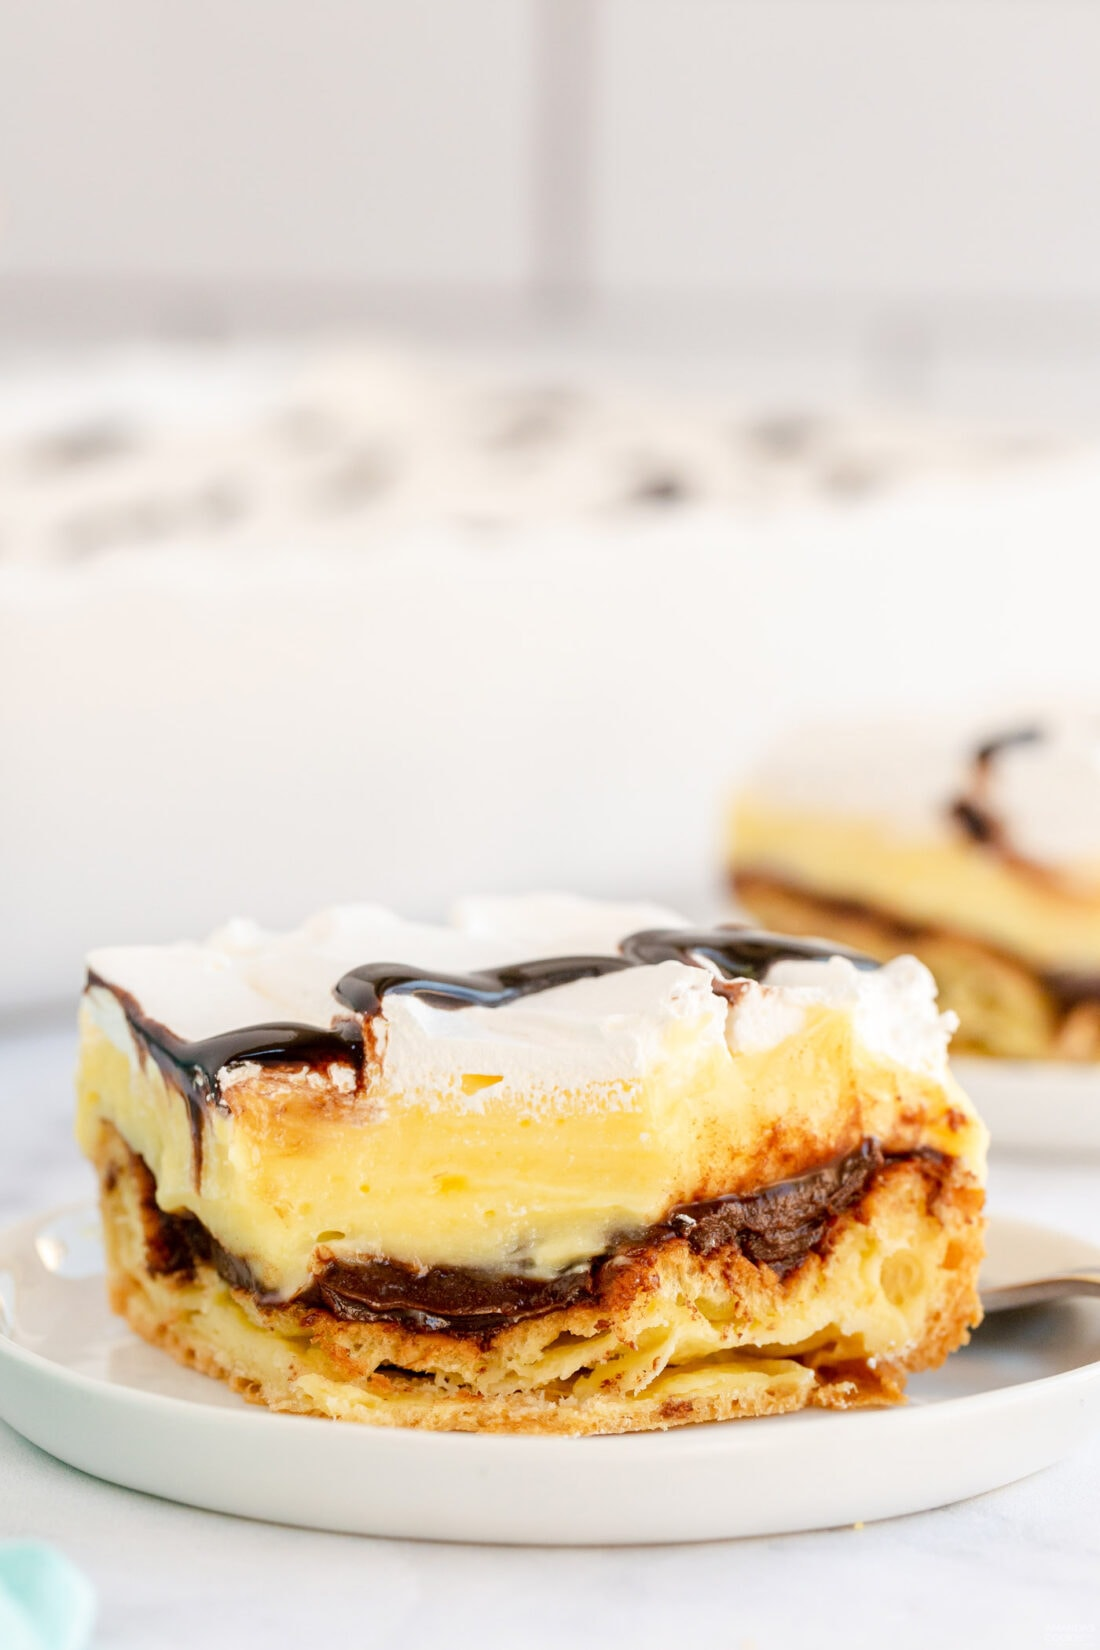 slice of Cream Puff Chocolate Eclair Cake on plate